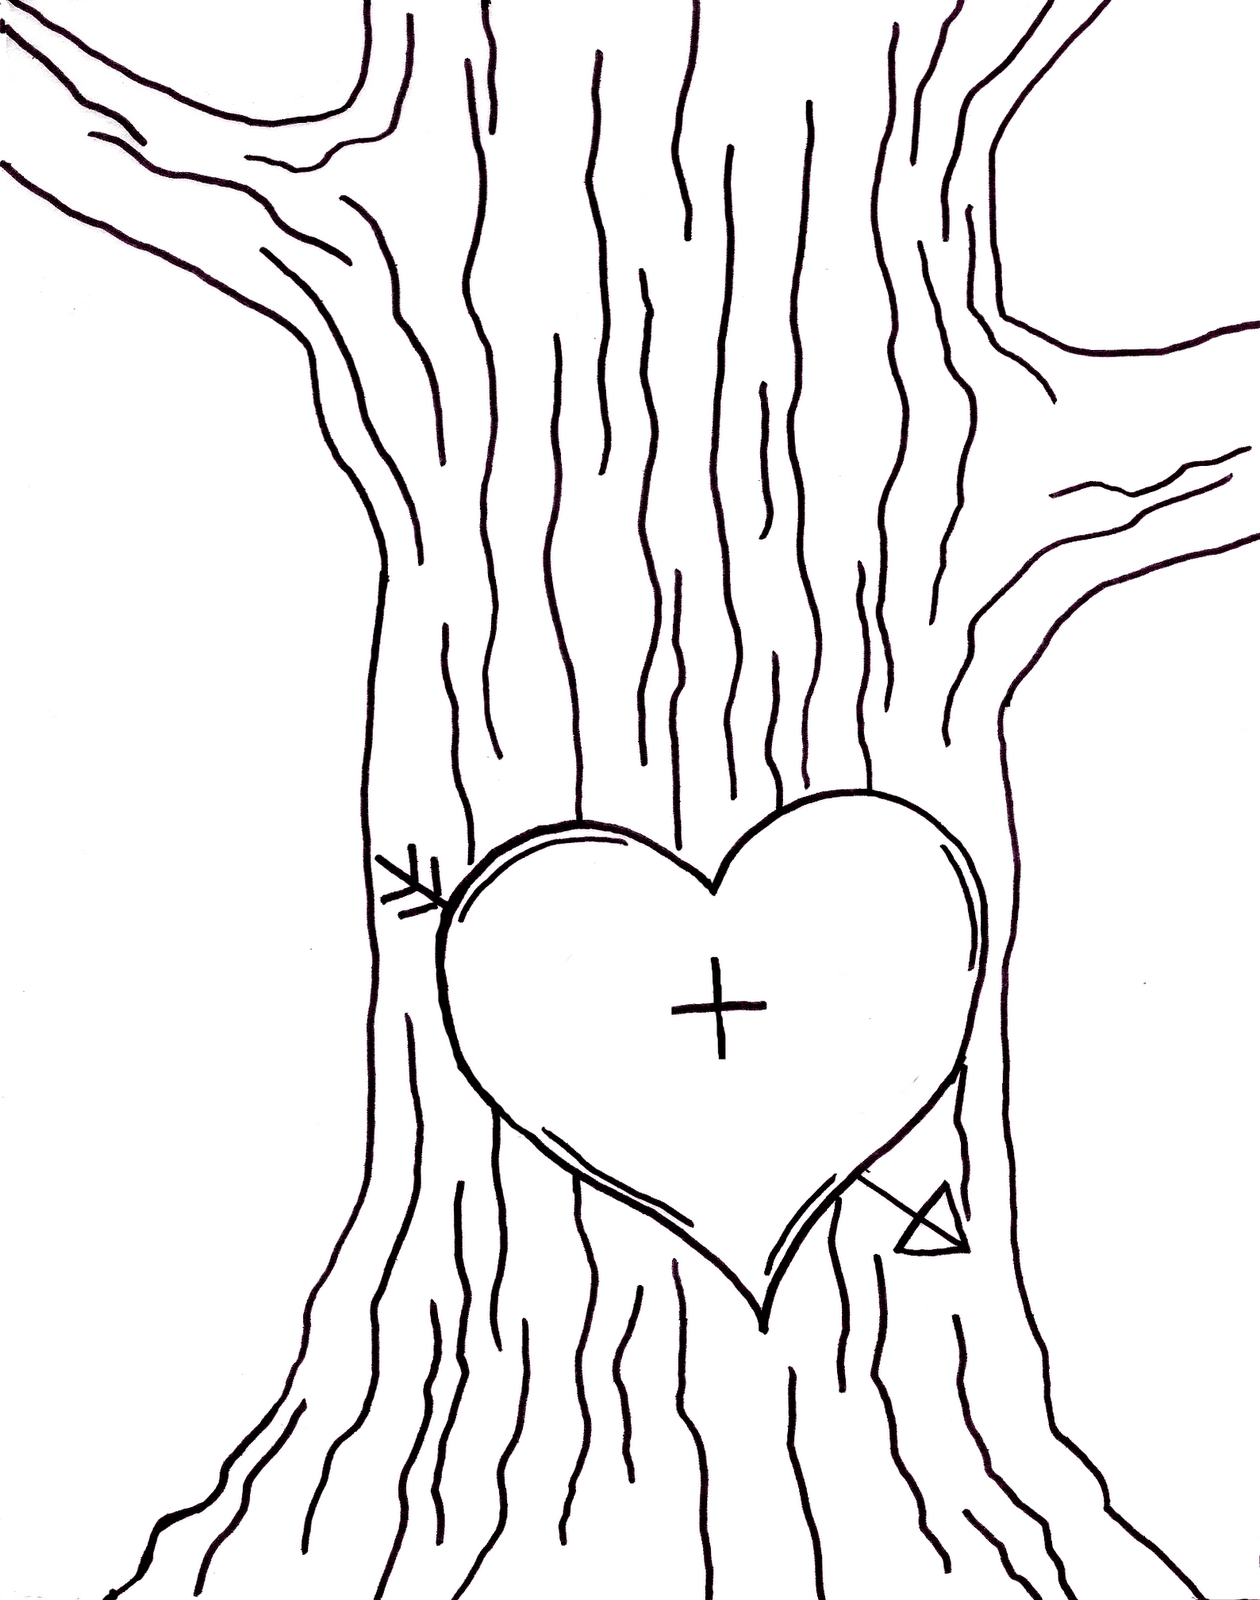 Clipart Image Black And White Tree Carvings 20 Free